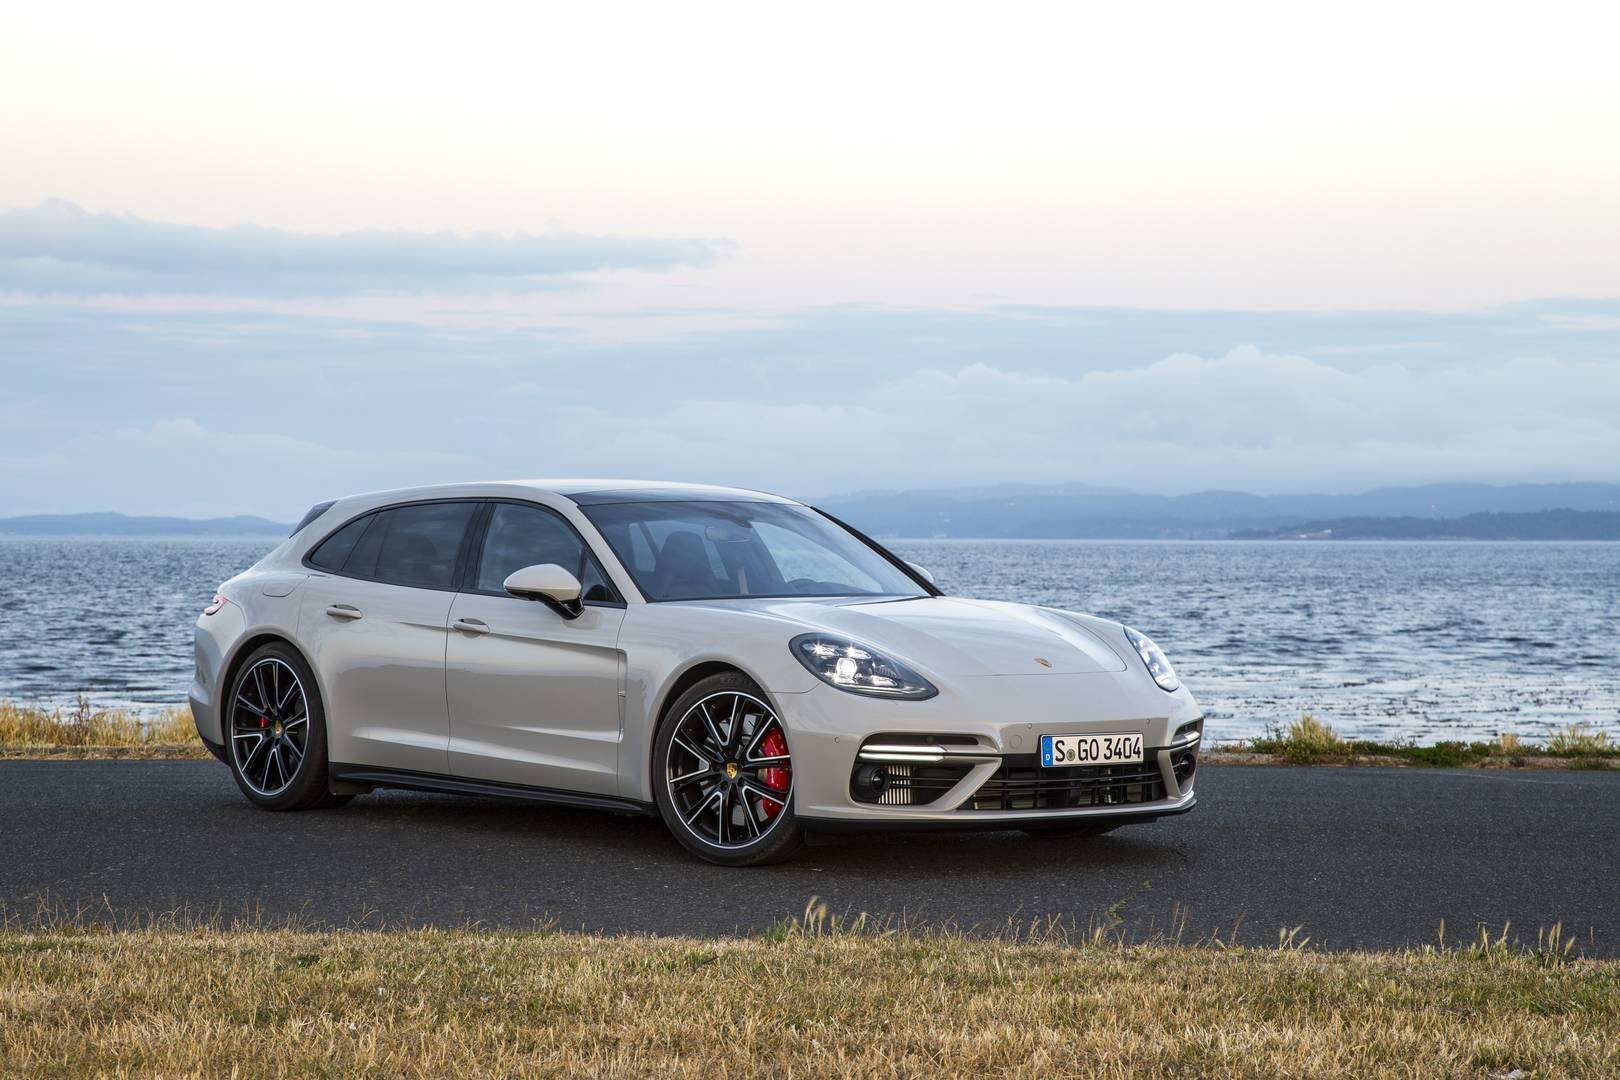 porsche v8 engine with Official Porsche Panamera Turbo Sport Turismo Review on The Ultimate Ferrari 360 Modena Buyers Guide together with W Motors Lykan Hypersport also Mercedes G63 Amg furthermore Range Rover Vogue 2 likewise Porsche Cayenne 2018.